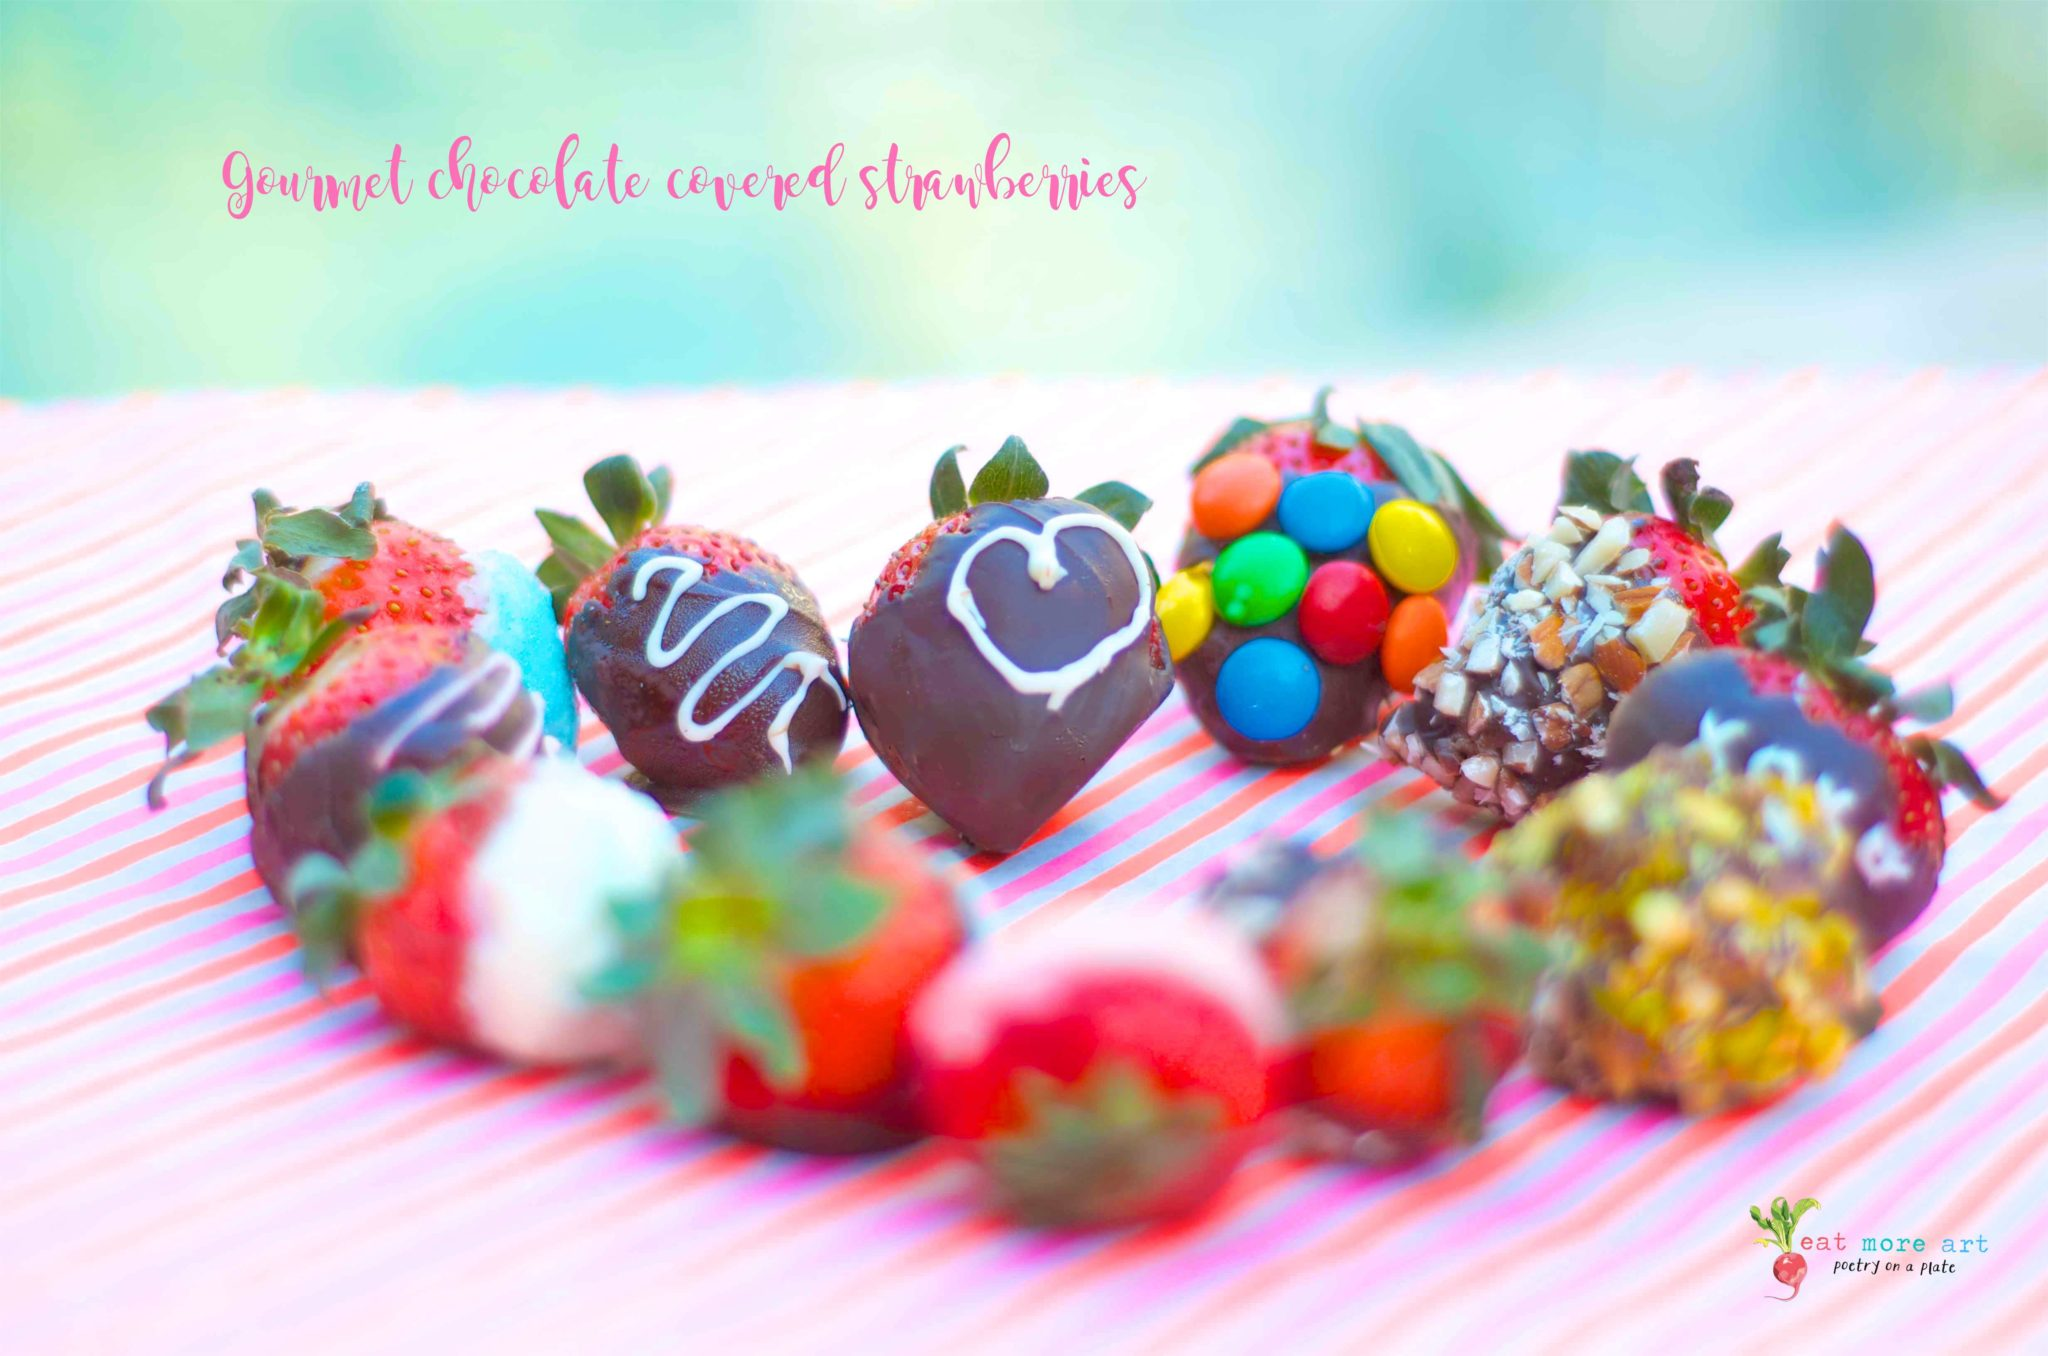 Gourmet Chocolate Covered Strawberries | Eat More Art